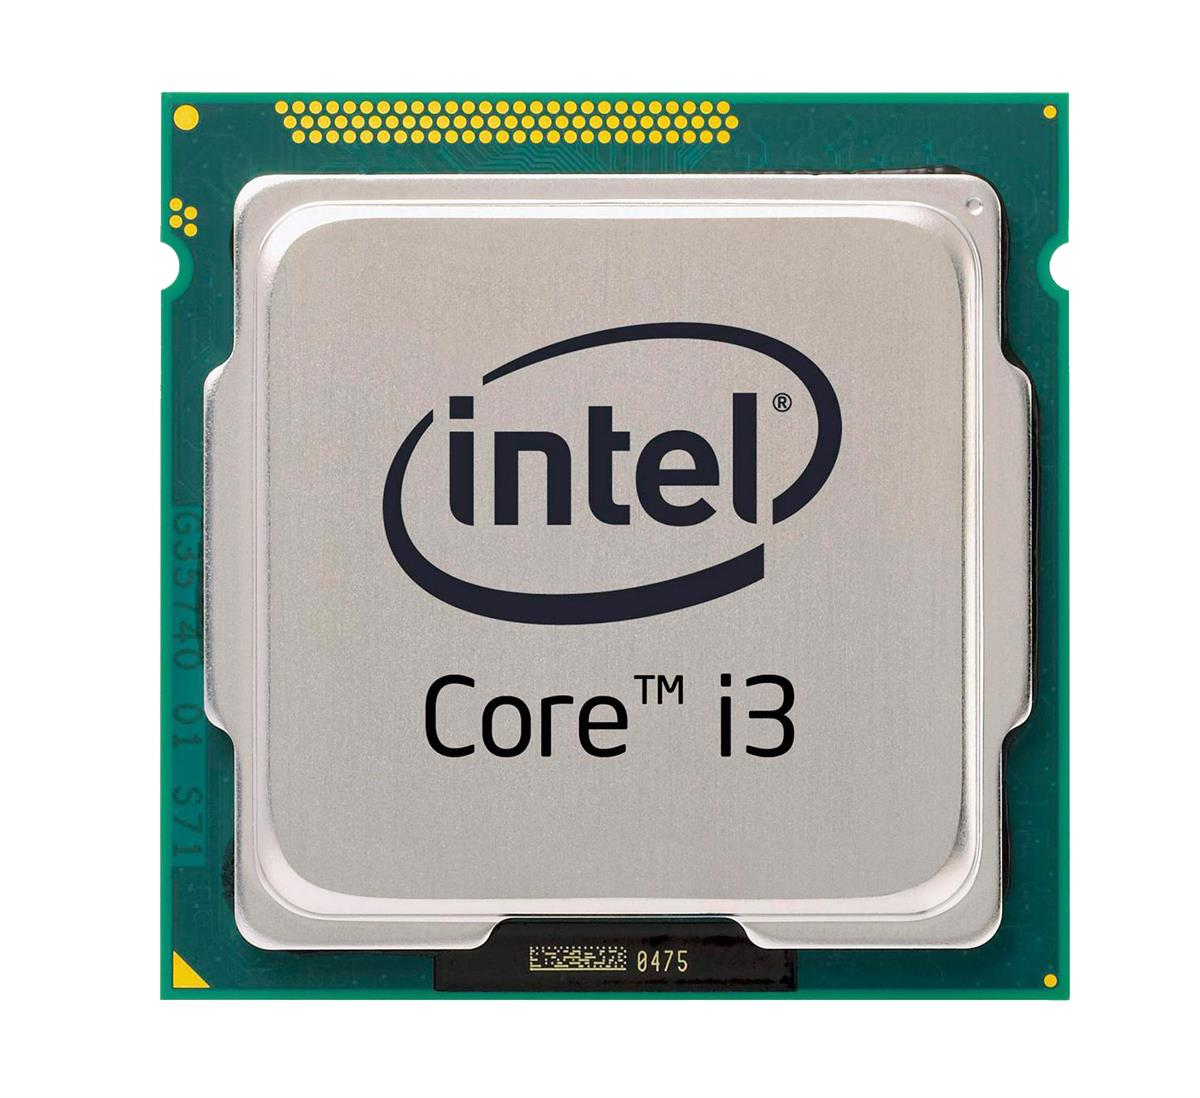 i3-5020U Intel Core i3 Dual Core 2.20GHz 5.00GT/s DMI2 3MB L3 Cache Mobile Processor